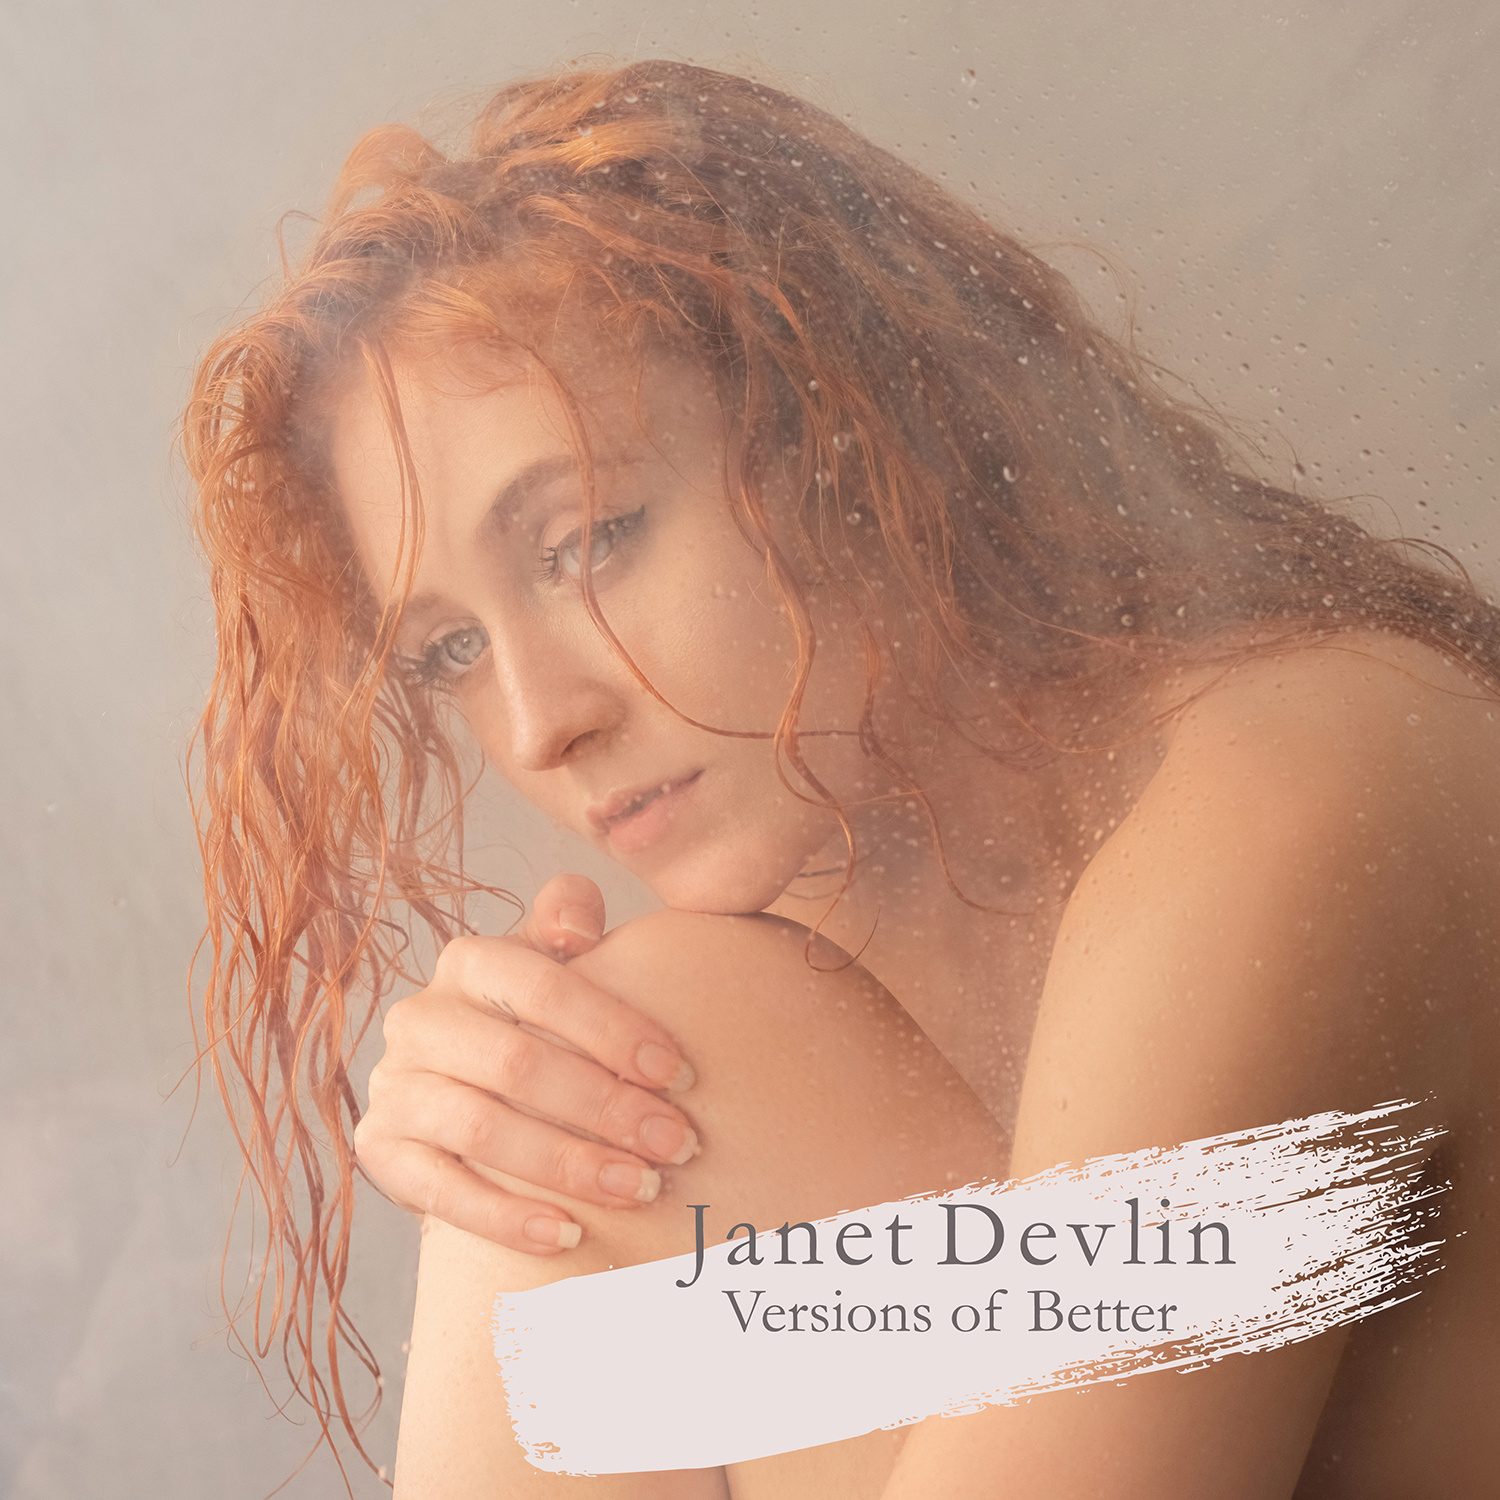 Janet Devlin - Versions of Better